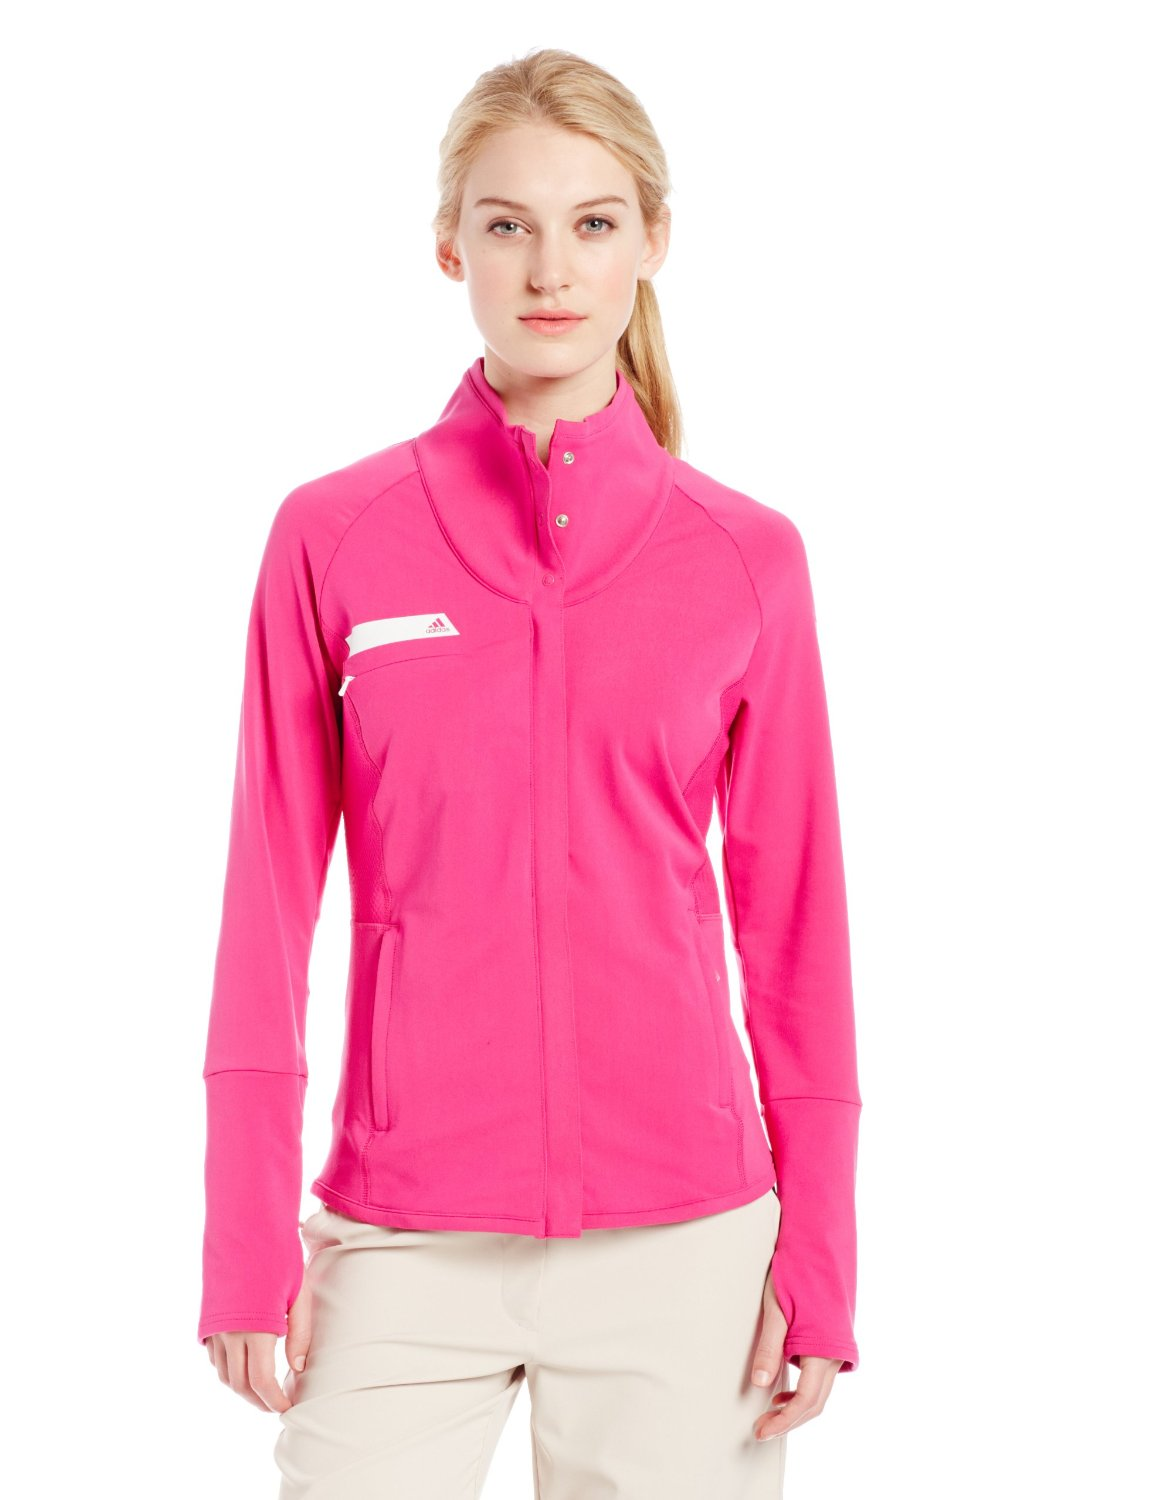 Adidas Womens Puremotion Tour Golf Jackets